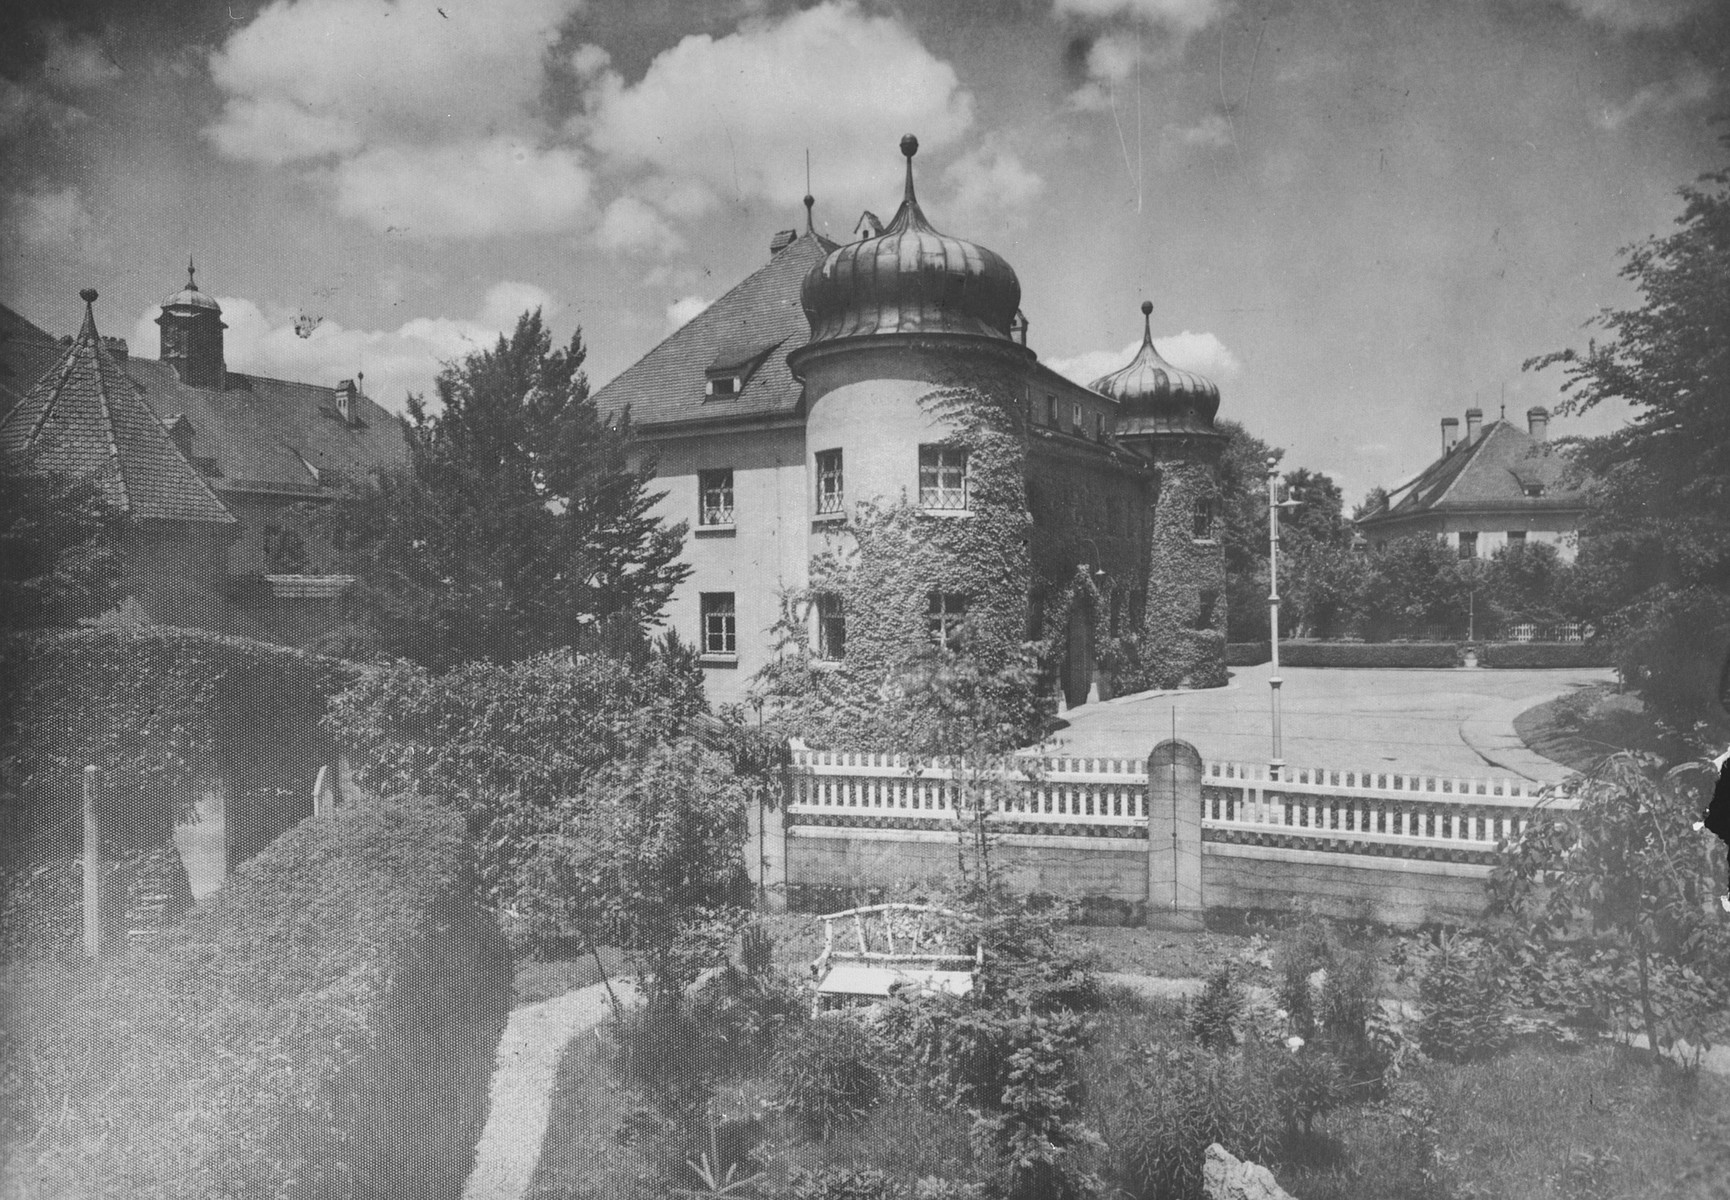 Exterior view of Landsberg prison where German war criminals were interned during the subsequent Nuremberg trials.